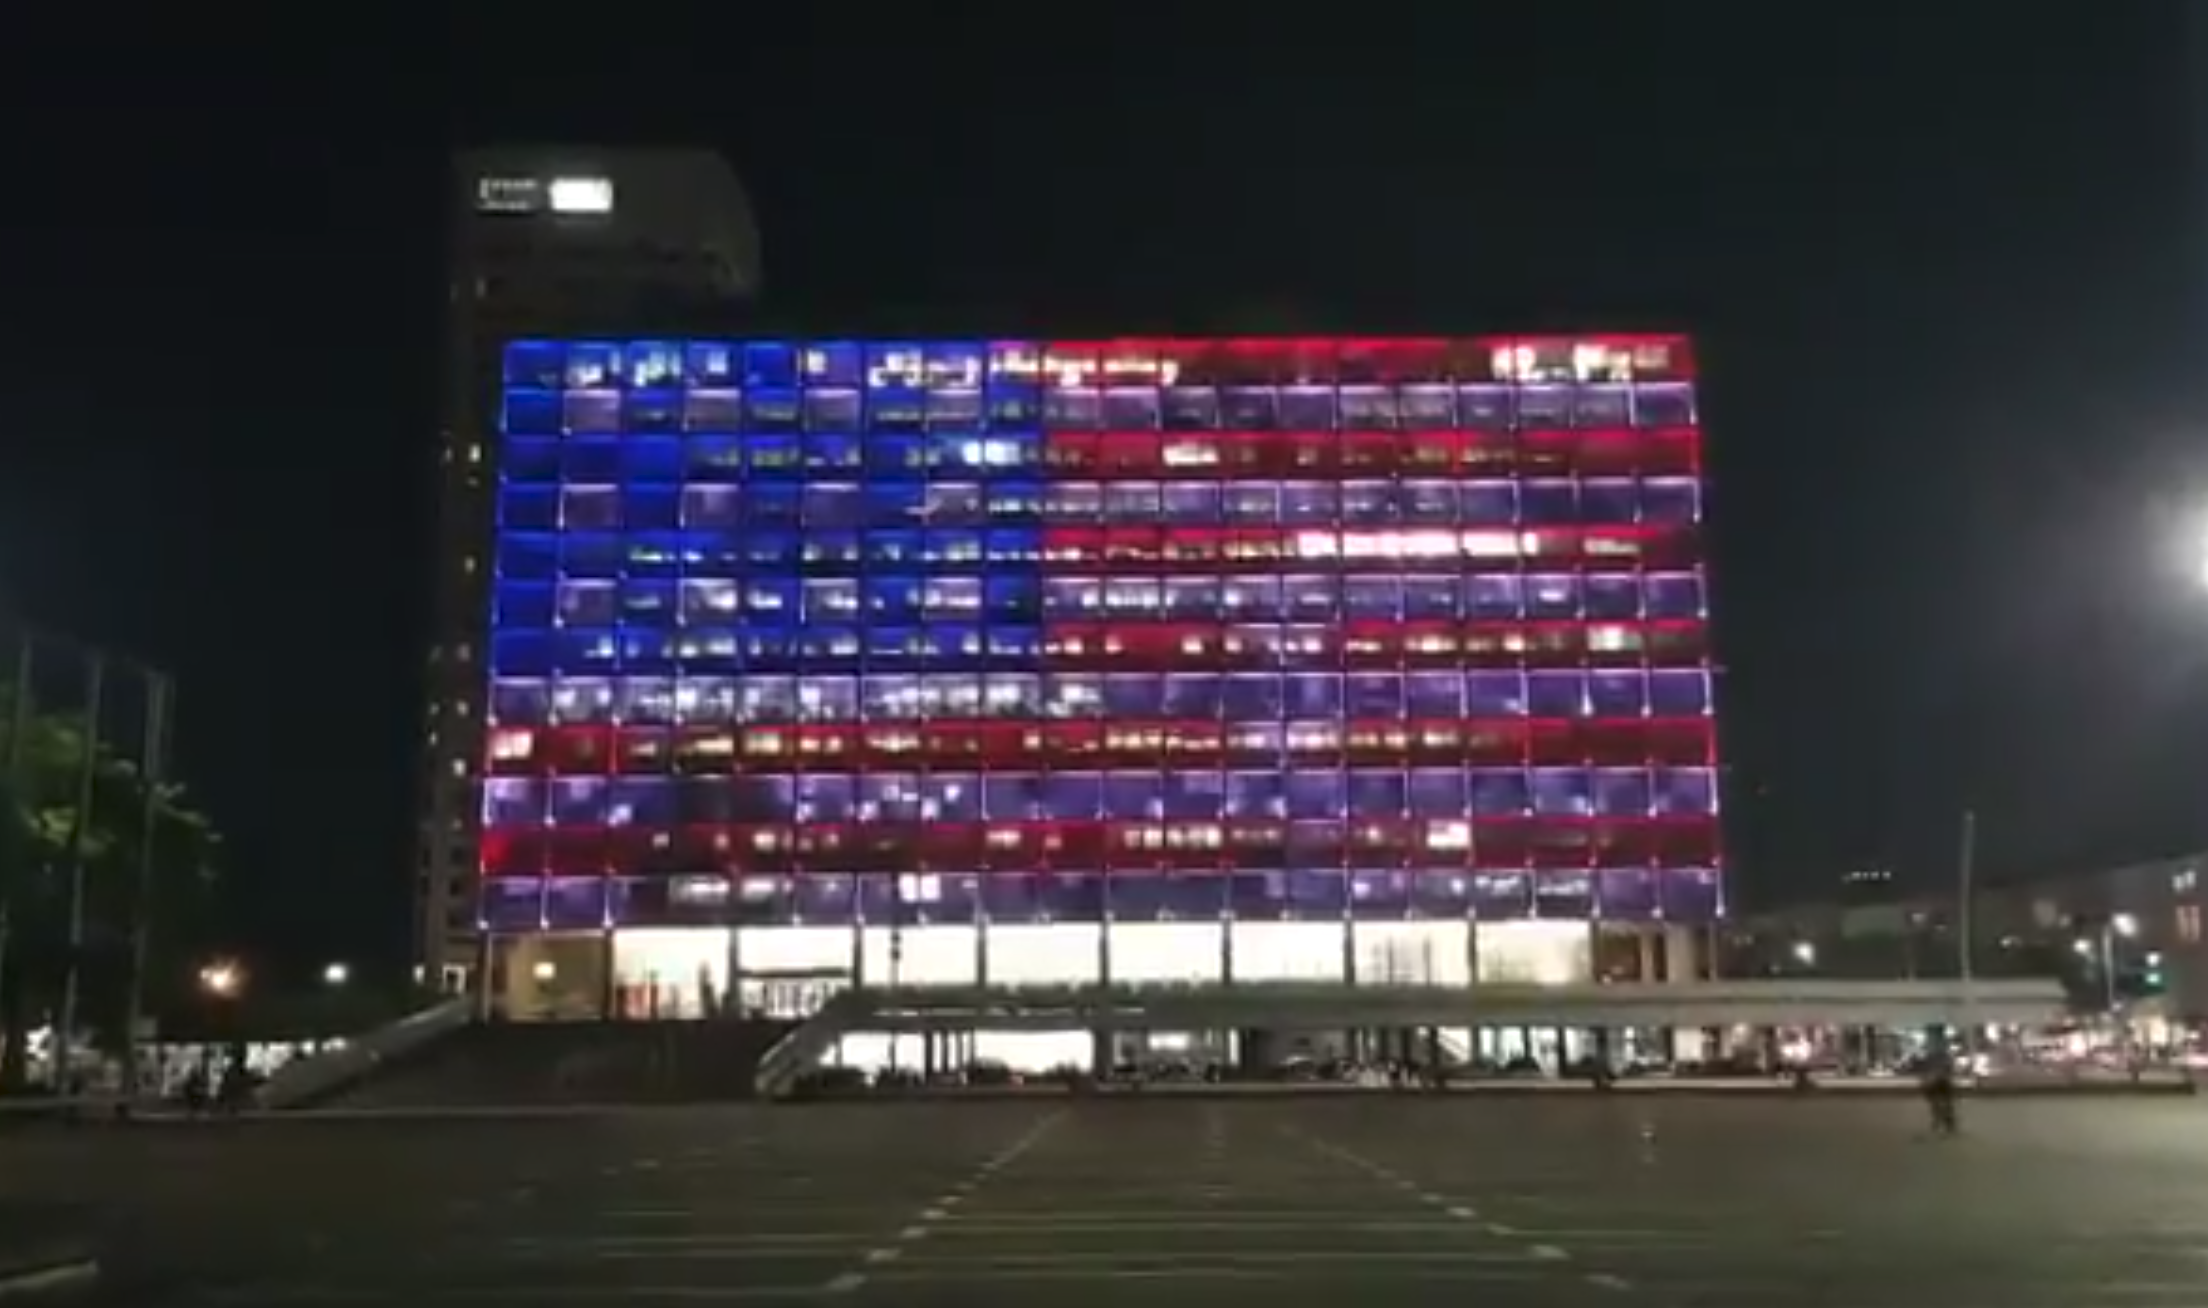 Tel Aviv City Hall lit up in the colors of an American flag. Aug. 4, 2019. Source: Screenshot.